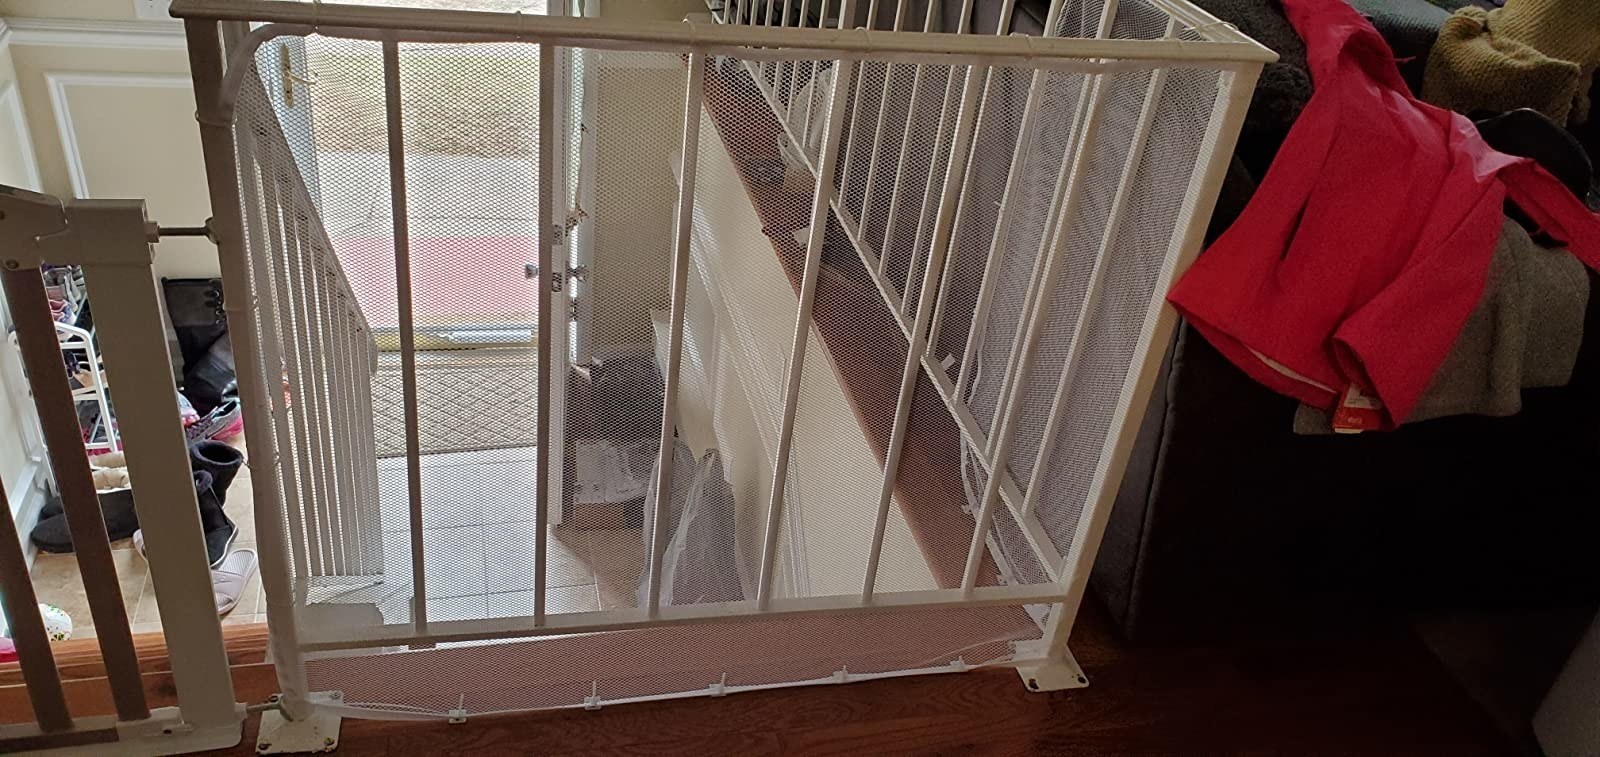 The mesh railing safety net, which ties at the top and bottom of the net, so the pet cannot get between the railings